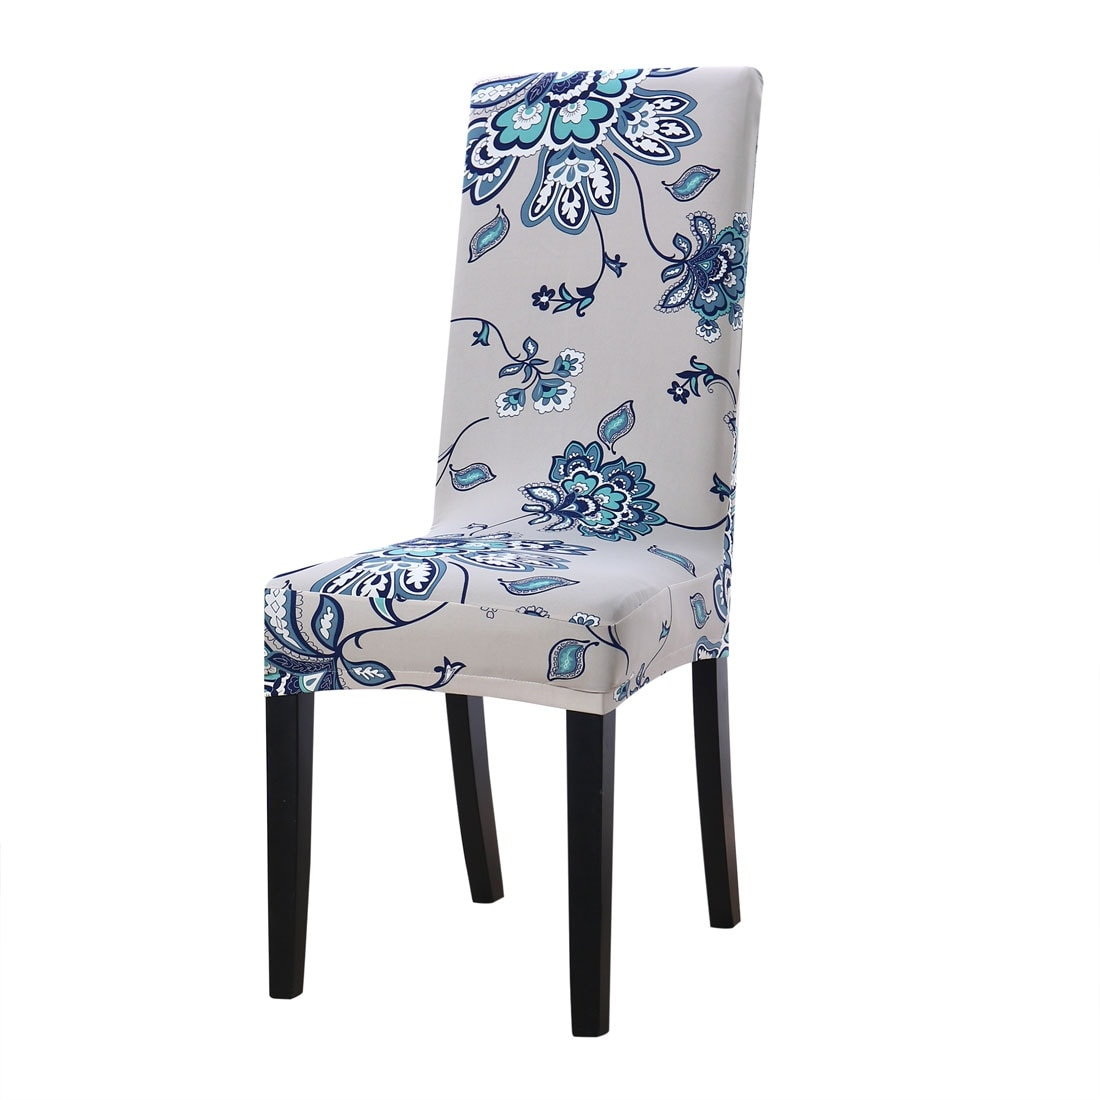 Chair Coverings Buy Chair Covers Slipcovers Online At Overstock Our Best